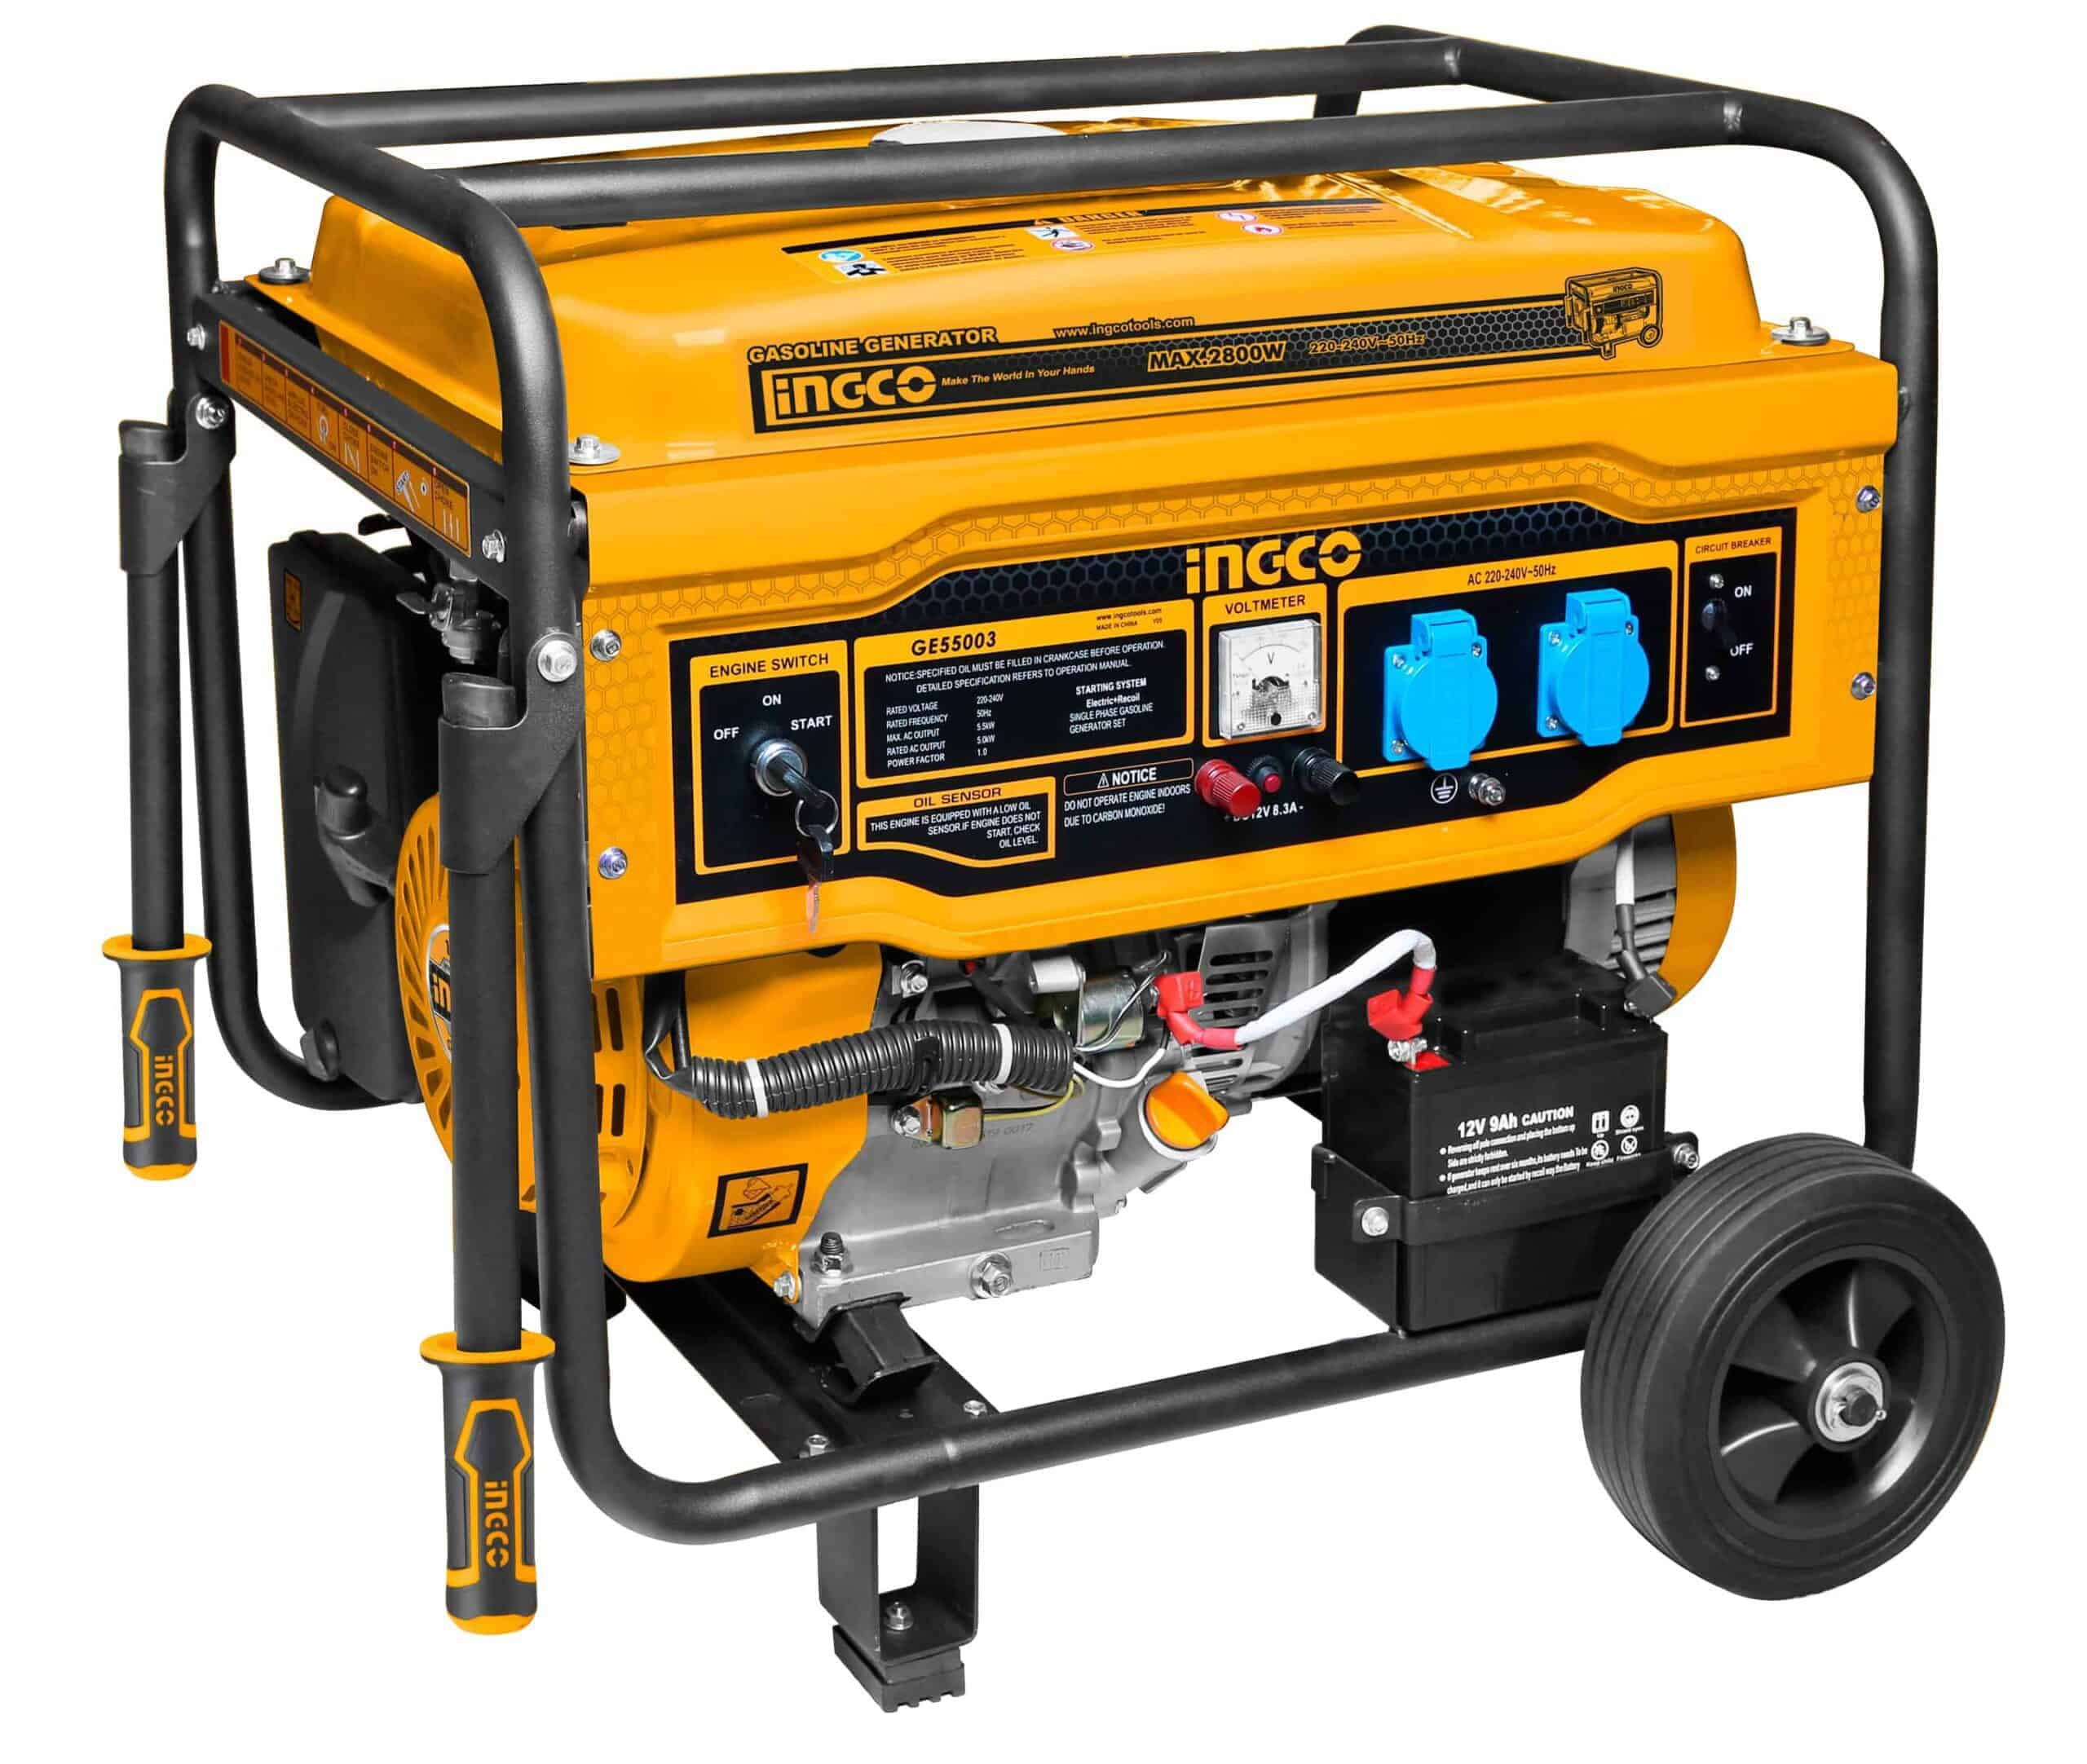 GENERATOR 4ST AIR COOLED 5.5KW